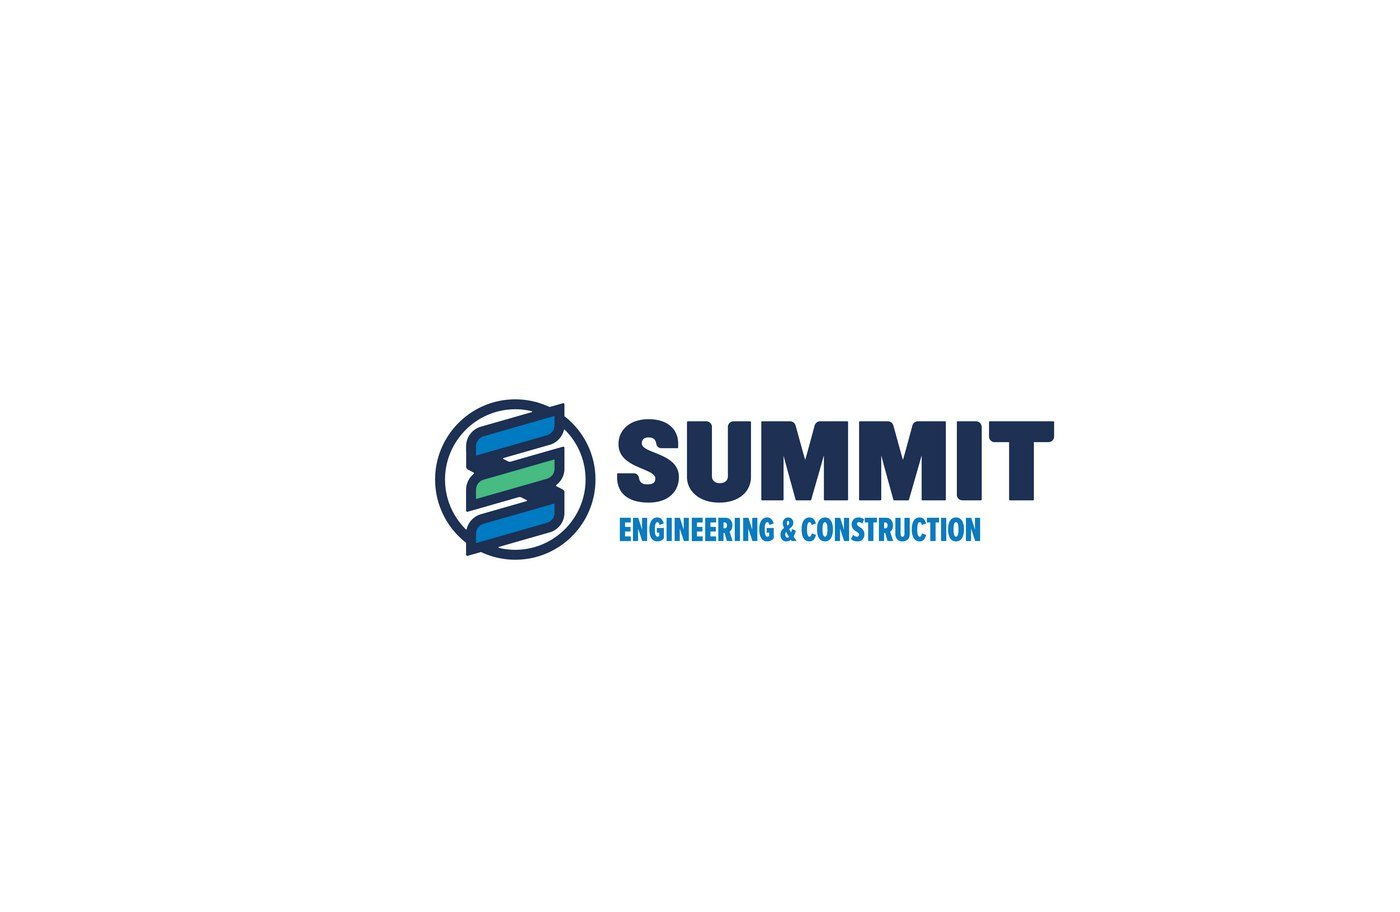 Summit_About Us_Summit Engineering & Construction-01